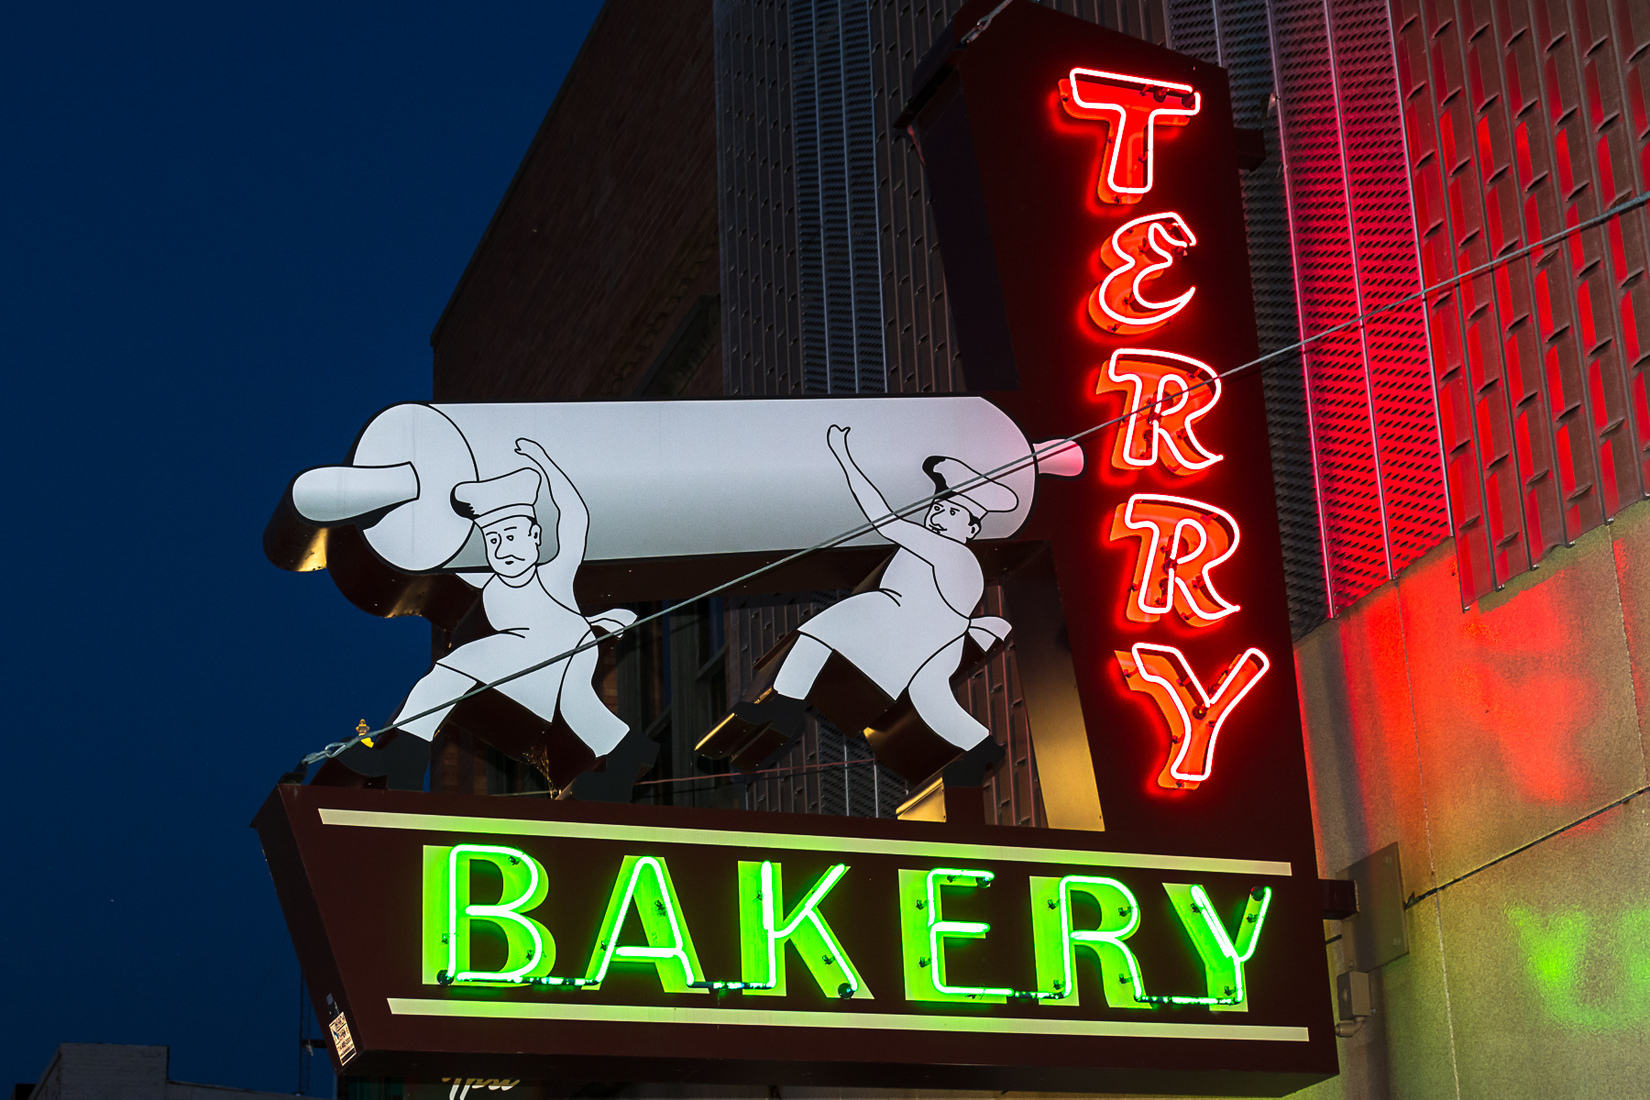 Neon Terry Bakery - Ypsilanti, Michigan